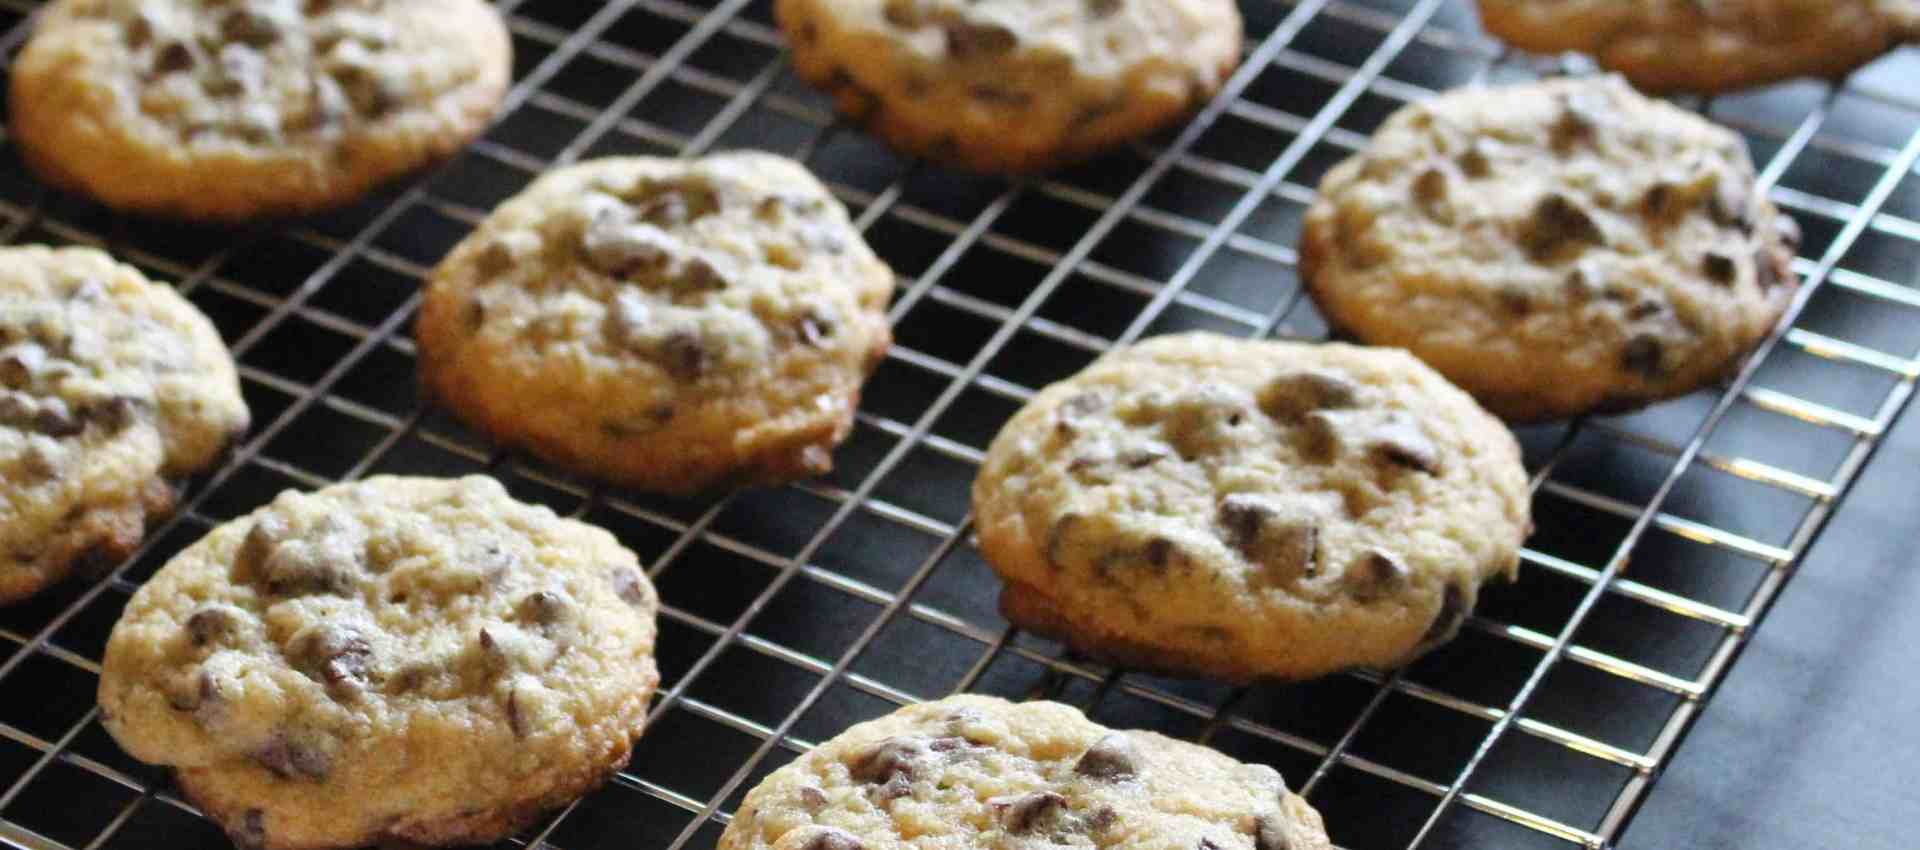 chocolate chip cookies, Amanda's Platge chocolate chip cookies, cookie recipe, chewy chocolate chip cookies, delicious chocolate chip cookies, cookie recipes